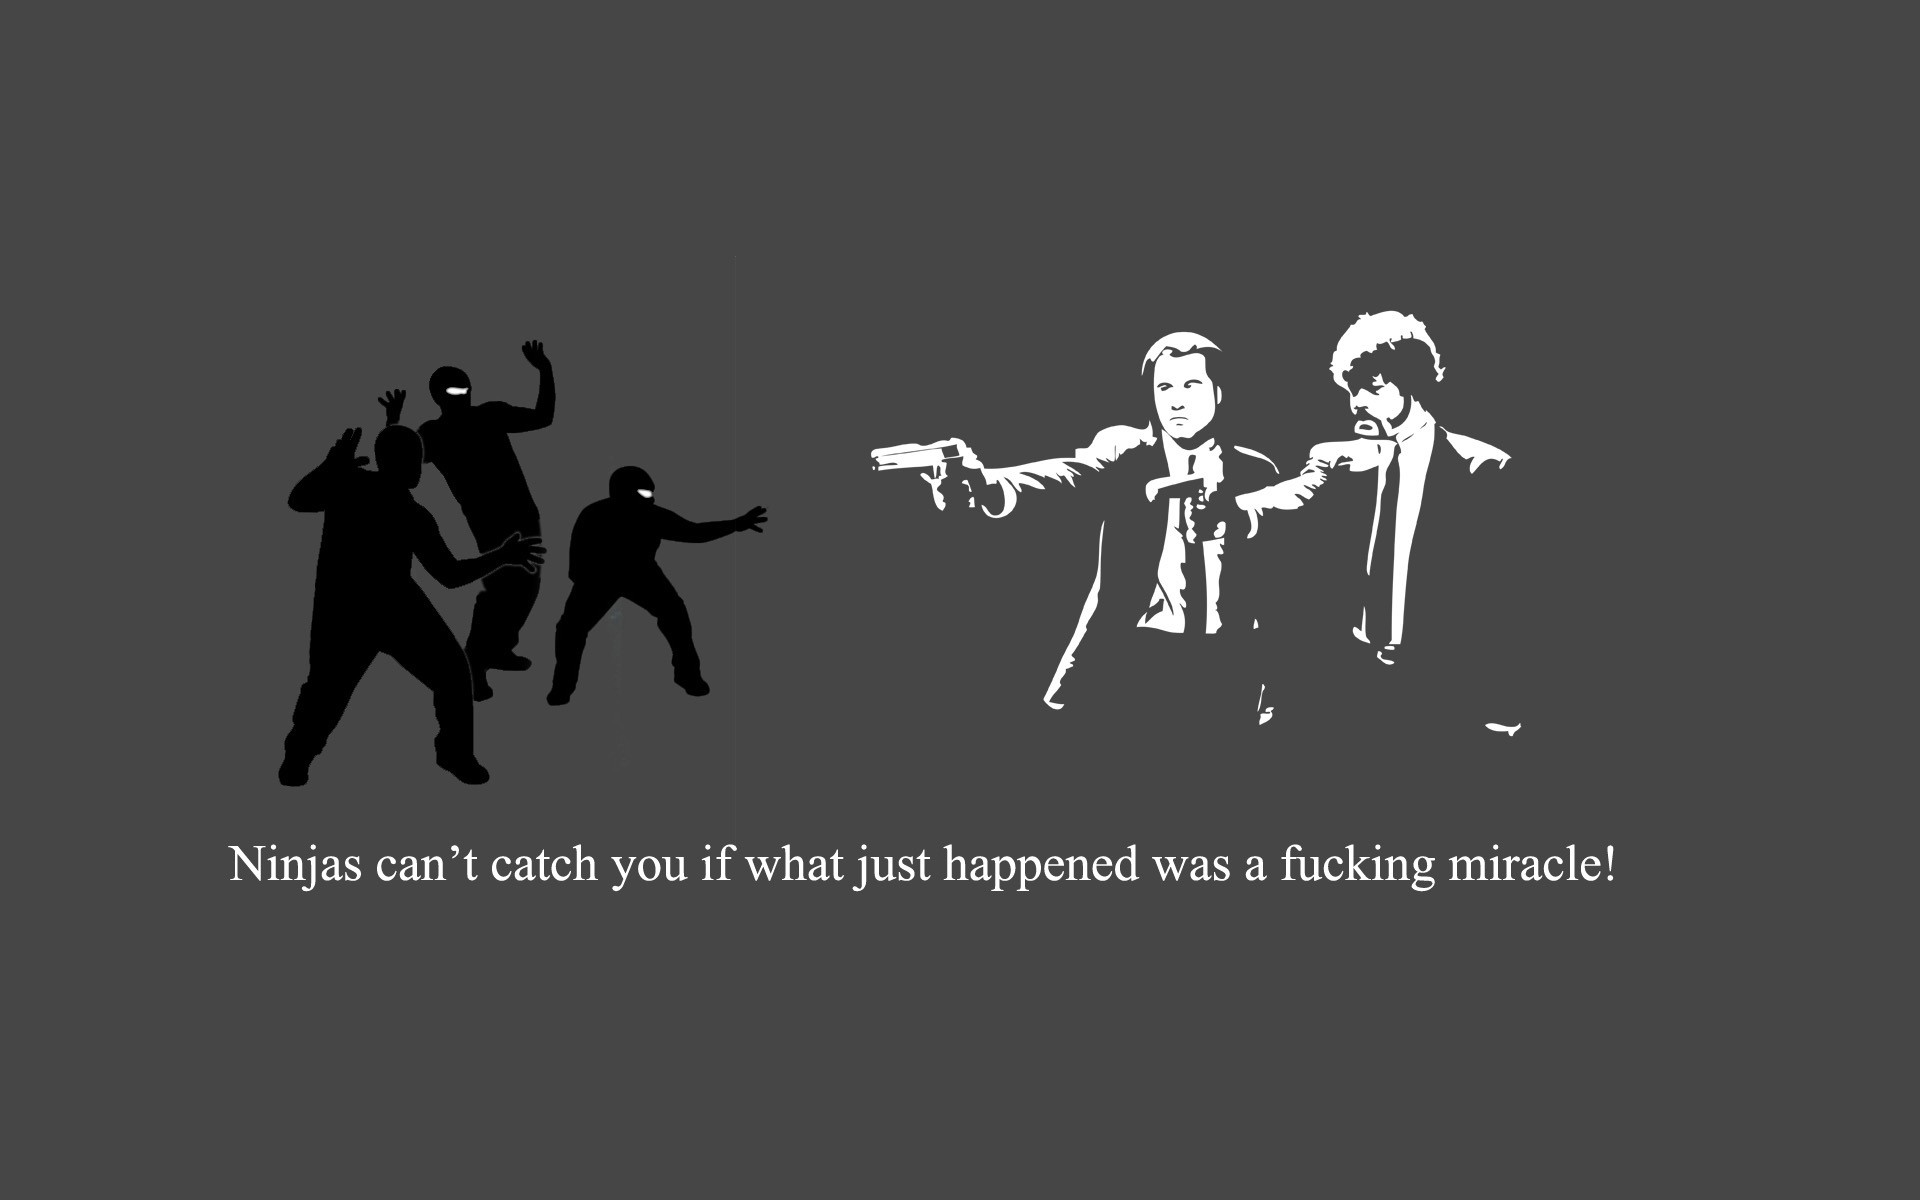 Pulp Fiction Wallpaper - WallpaperSafari